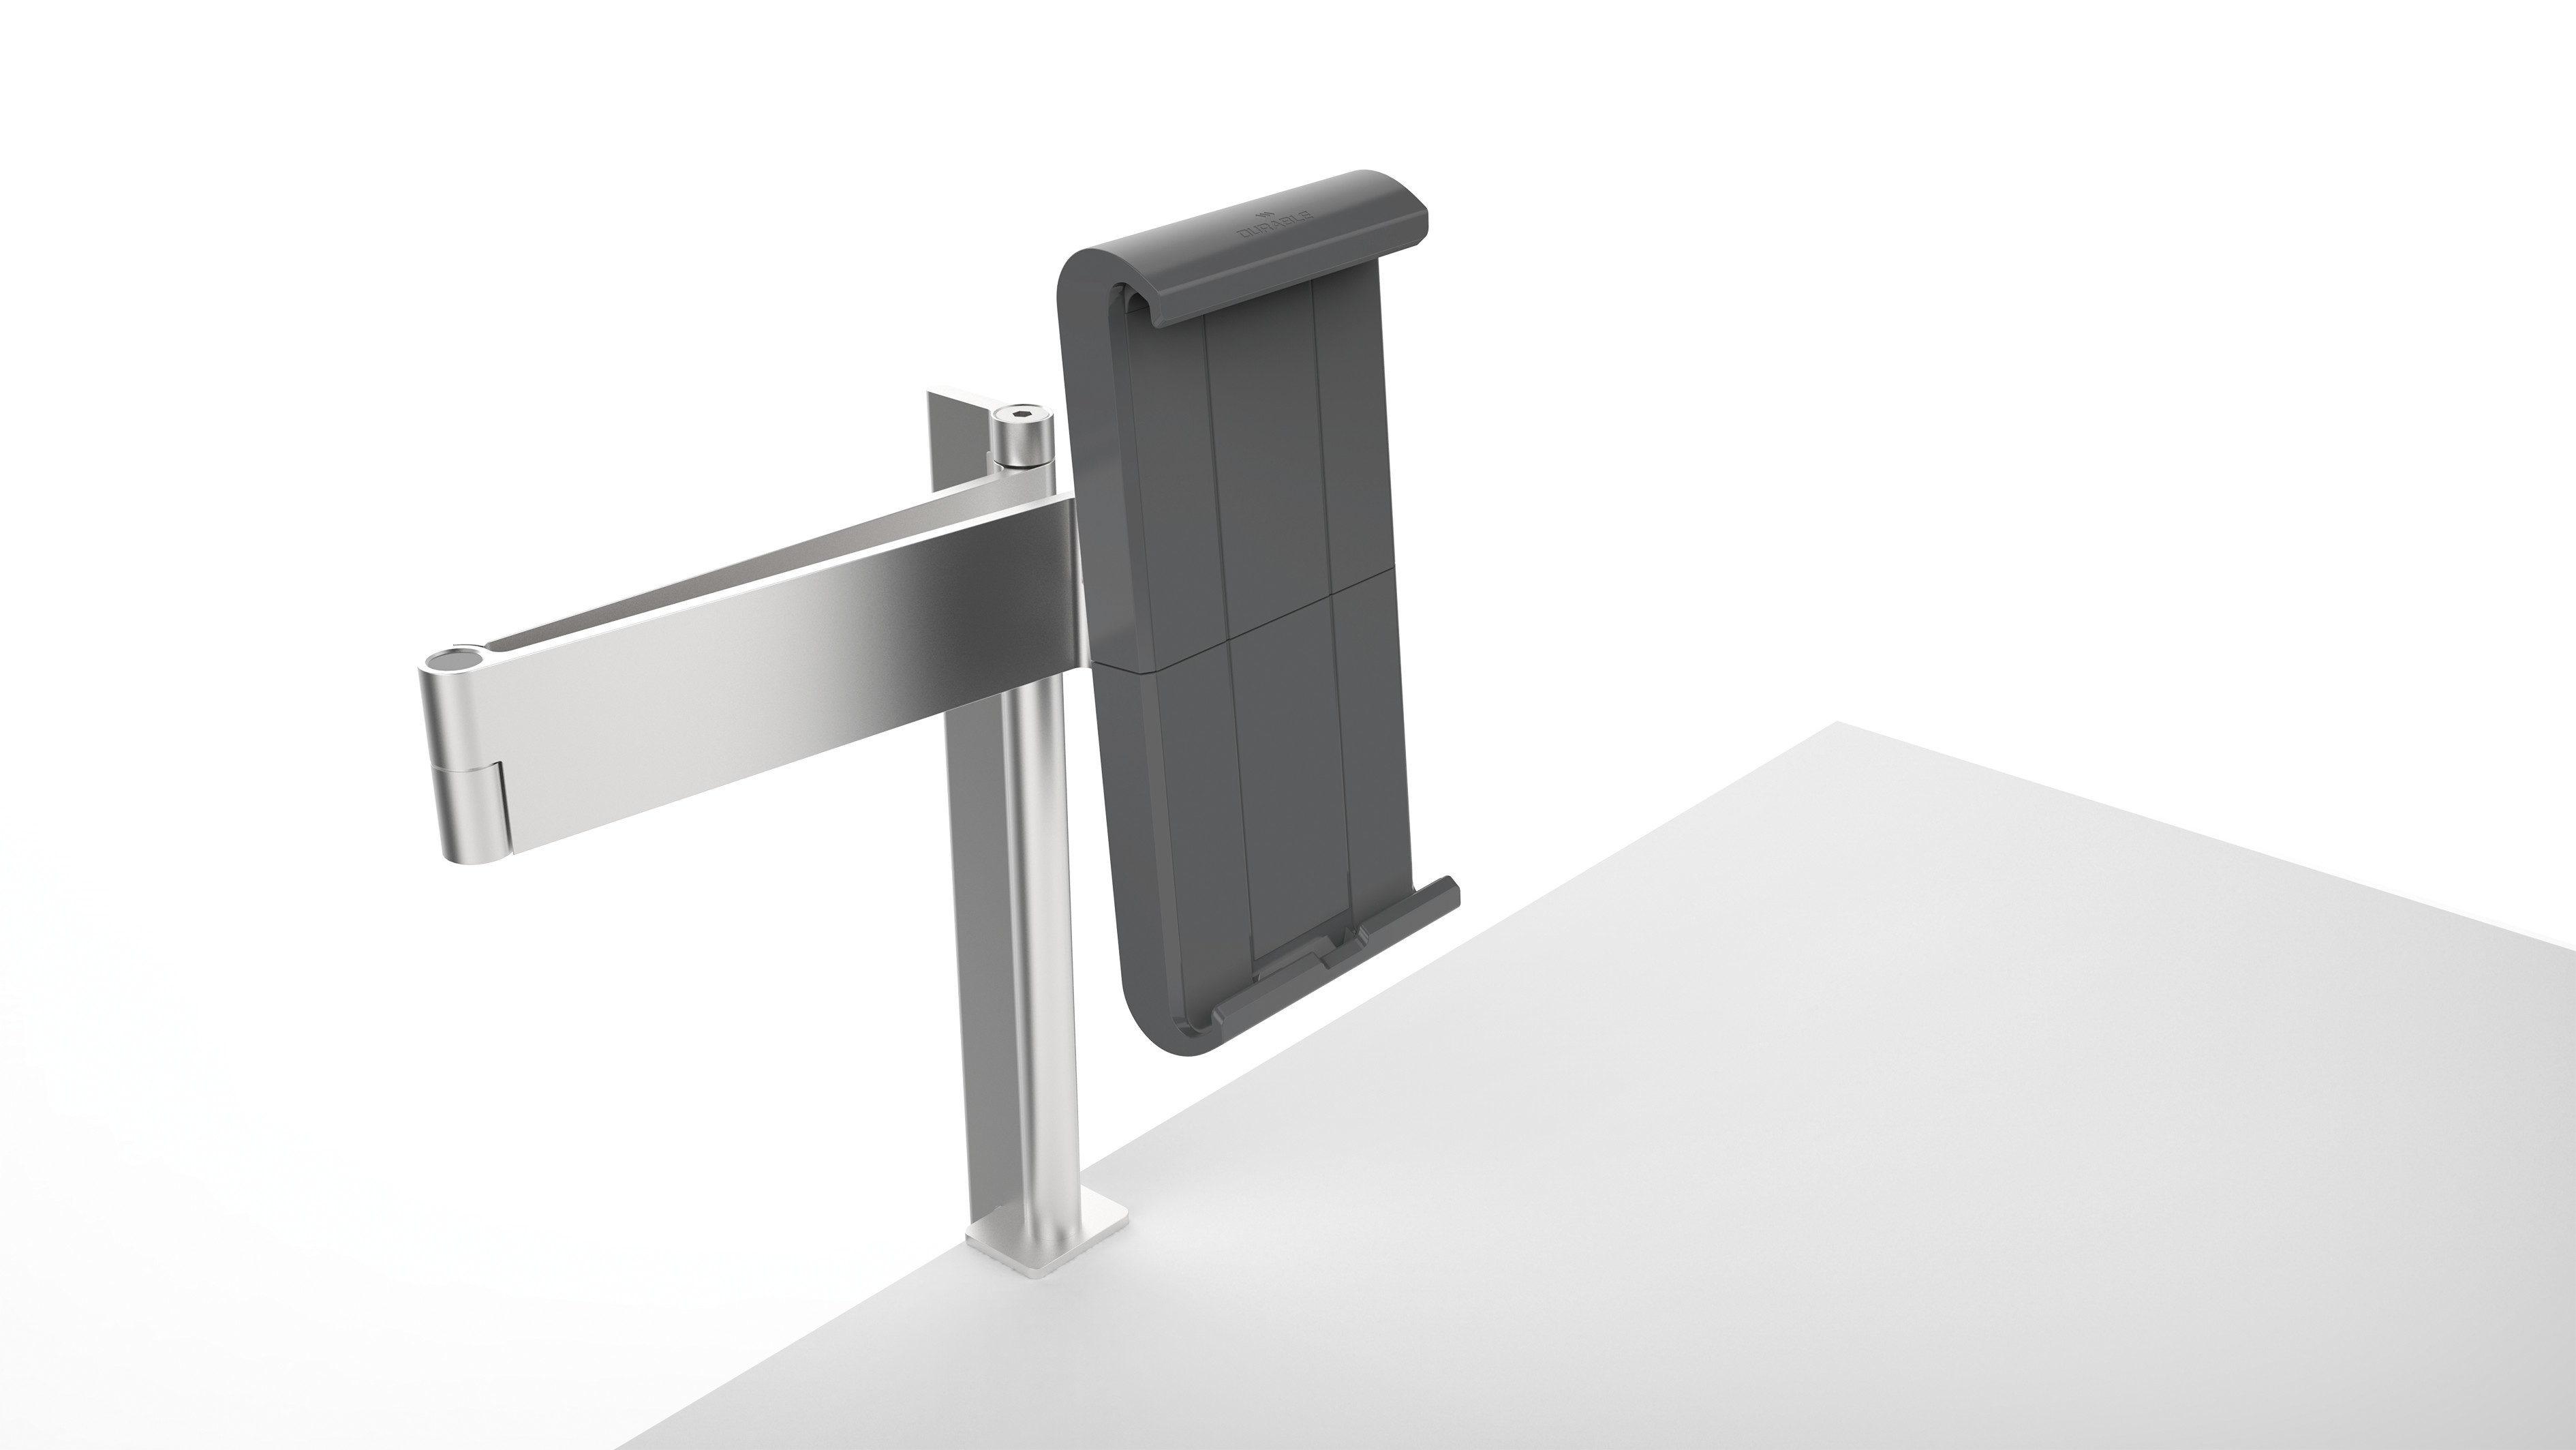 DURABLE TABLET HOLDER TABLE CLAMP 1 ST Z893199